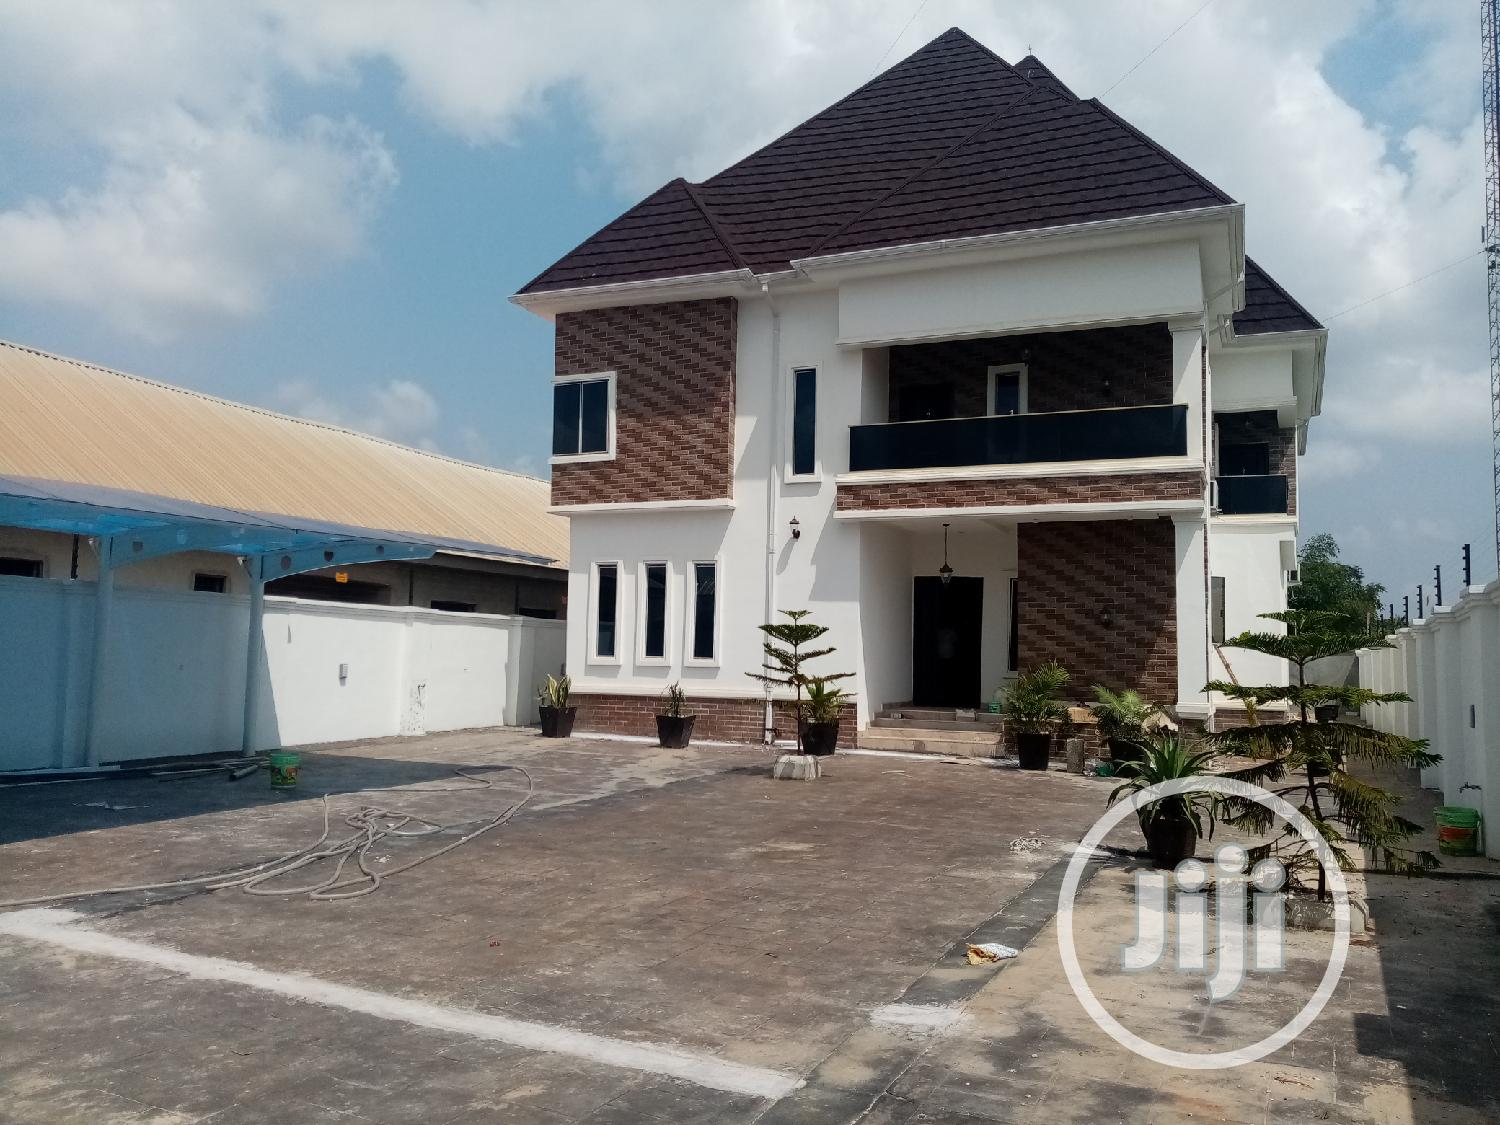 6 Bedrooms Duplex for Sale Oshimili South